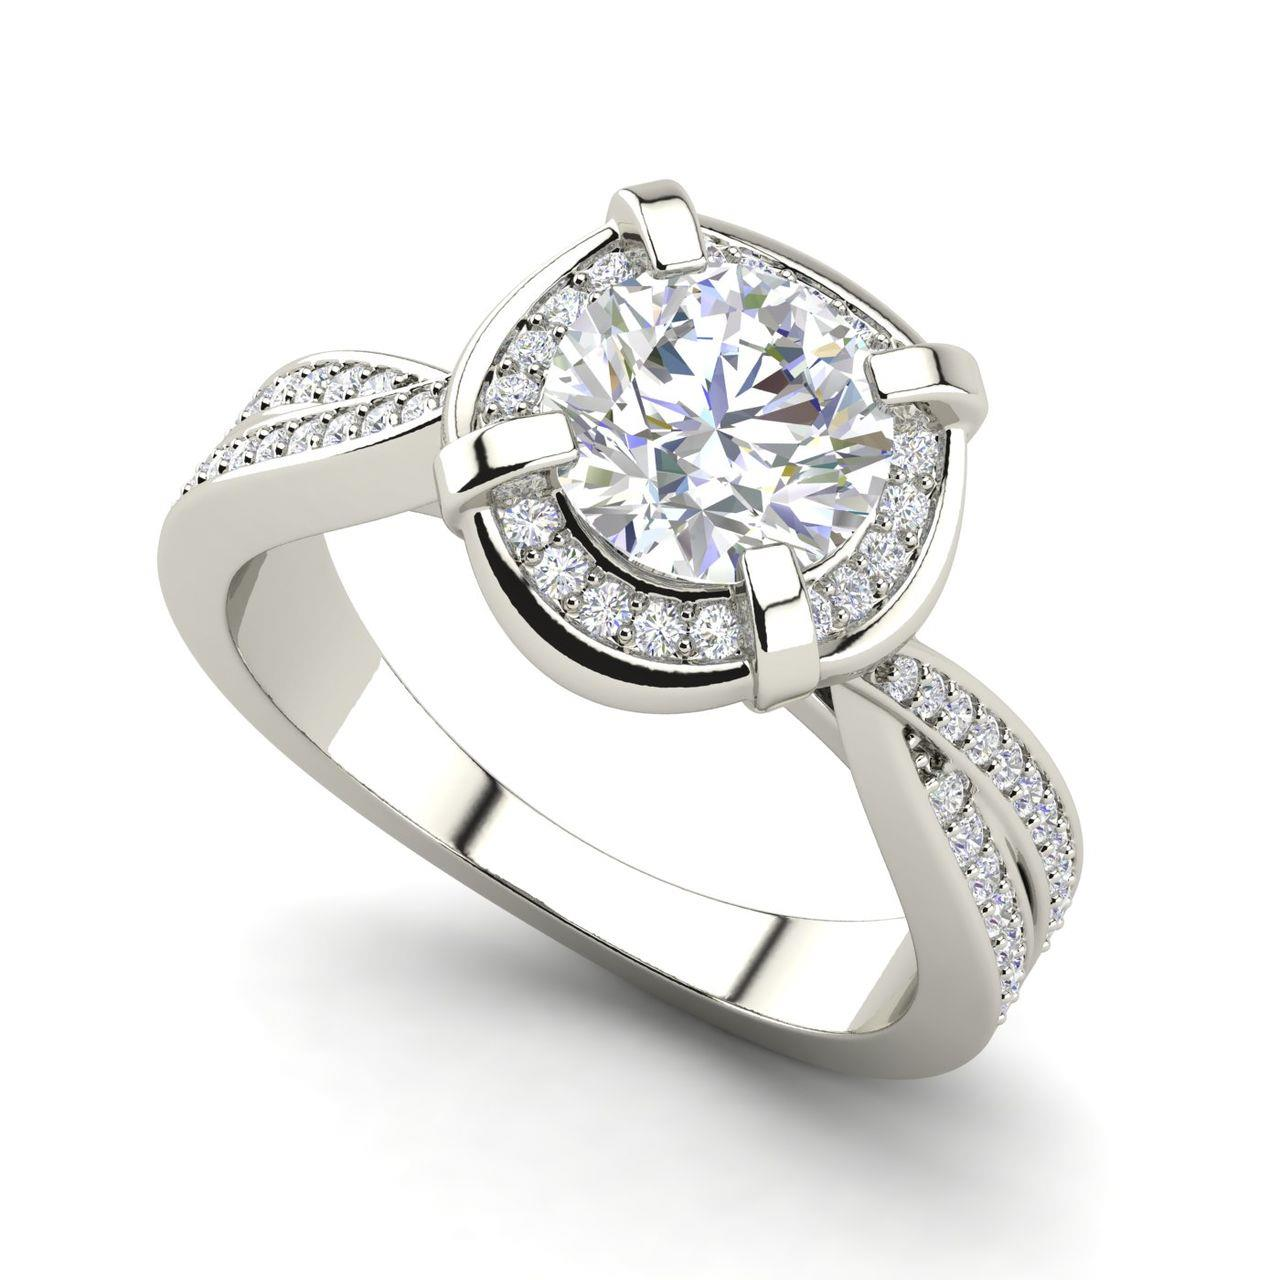 Twisted Halo 1.65 Carat Round Cut Diamond Engagement Ring